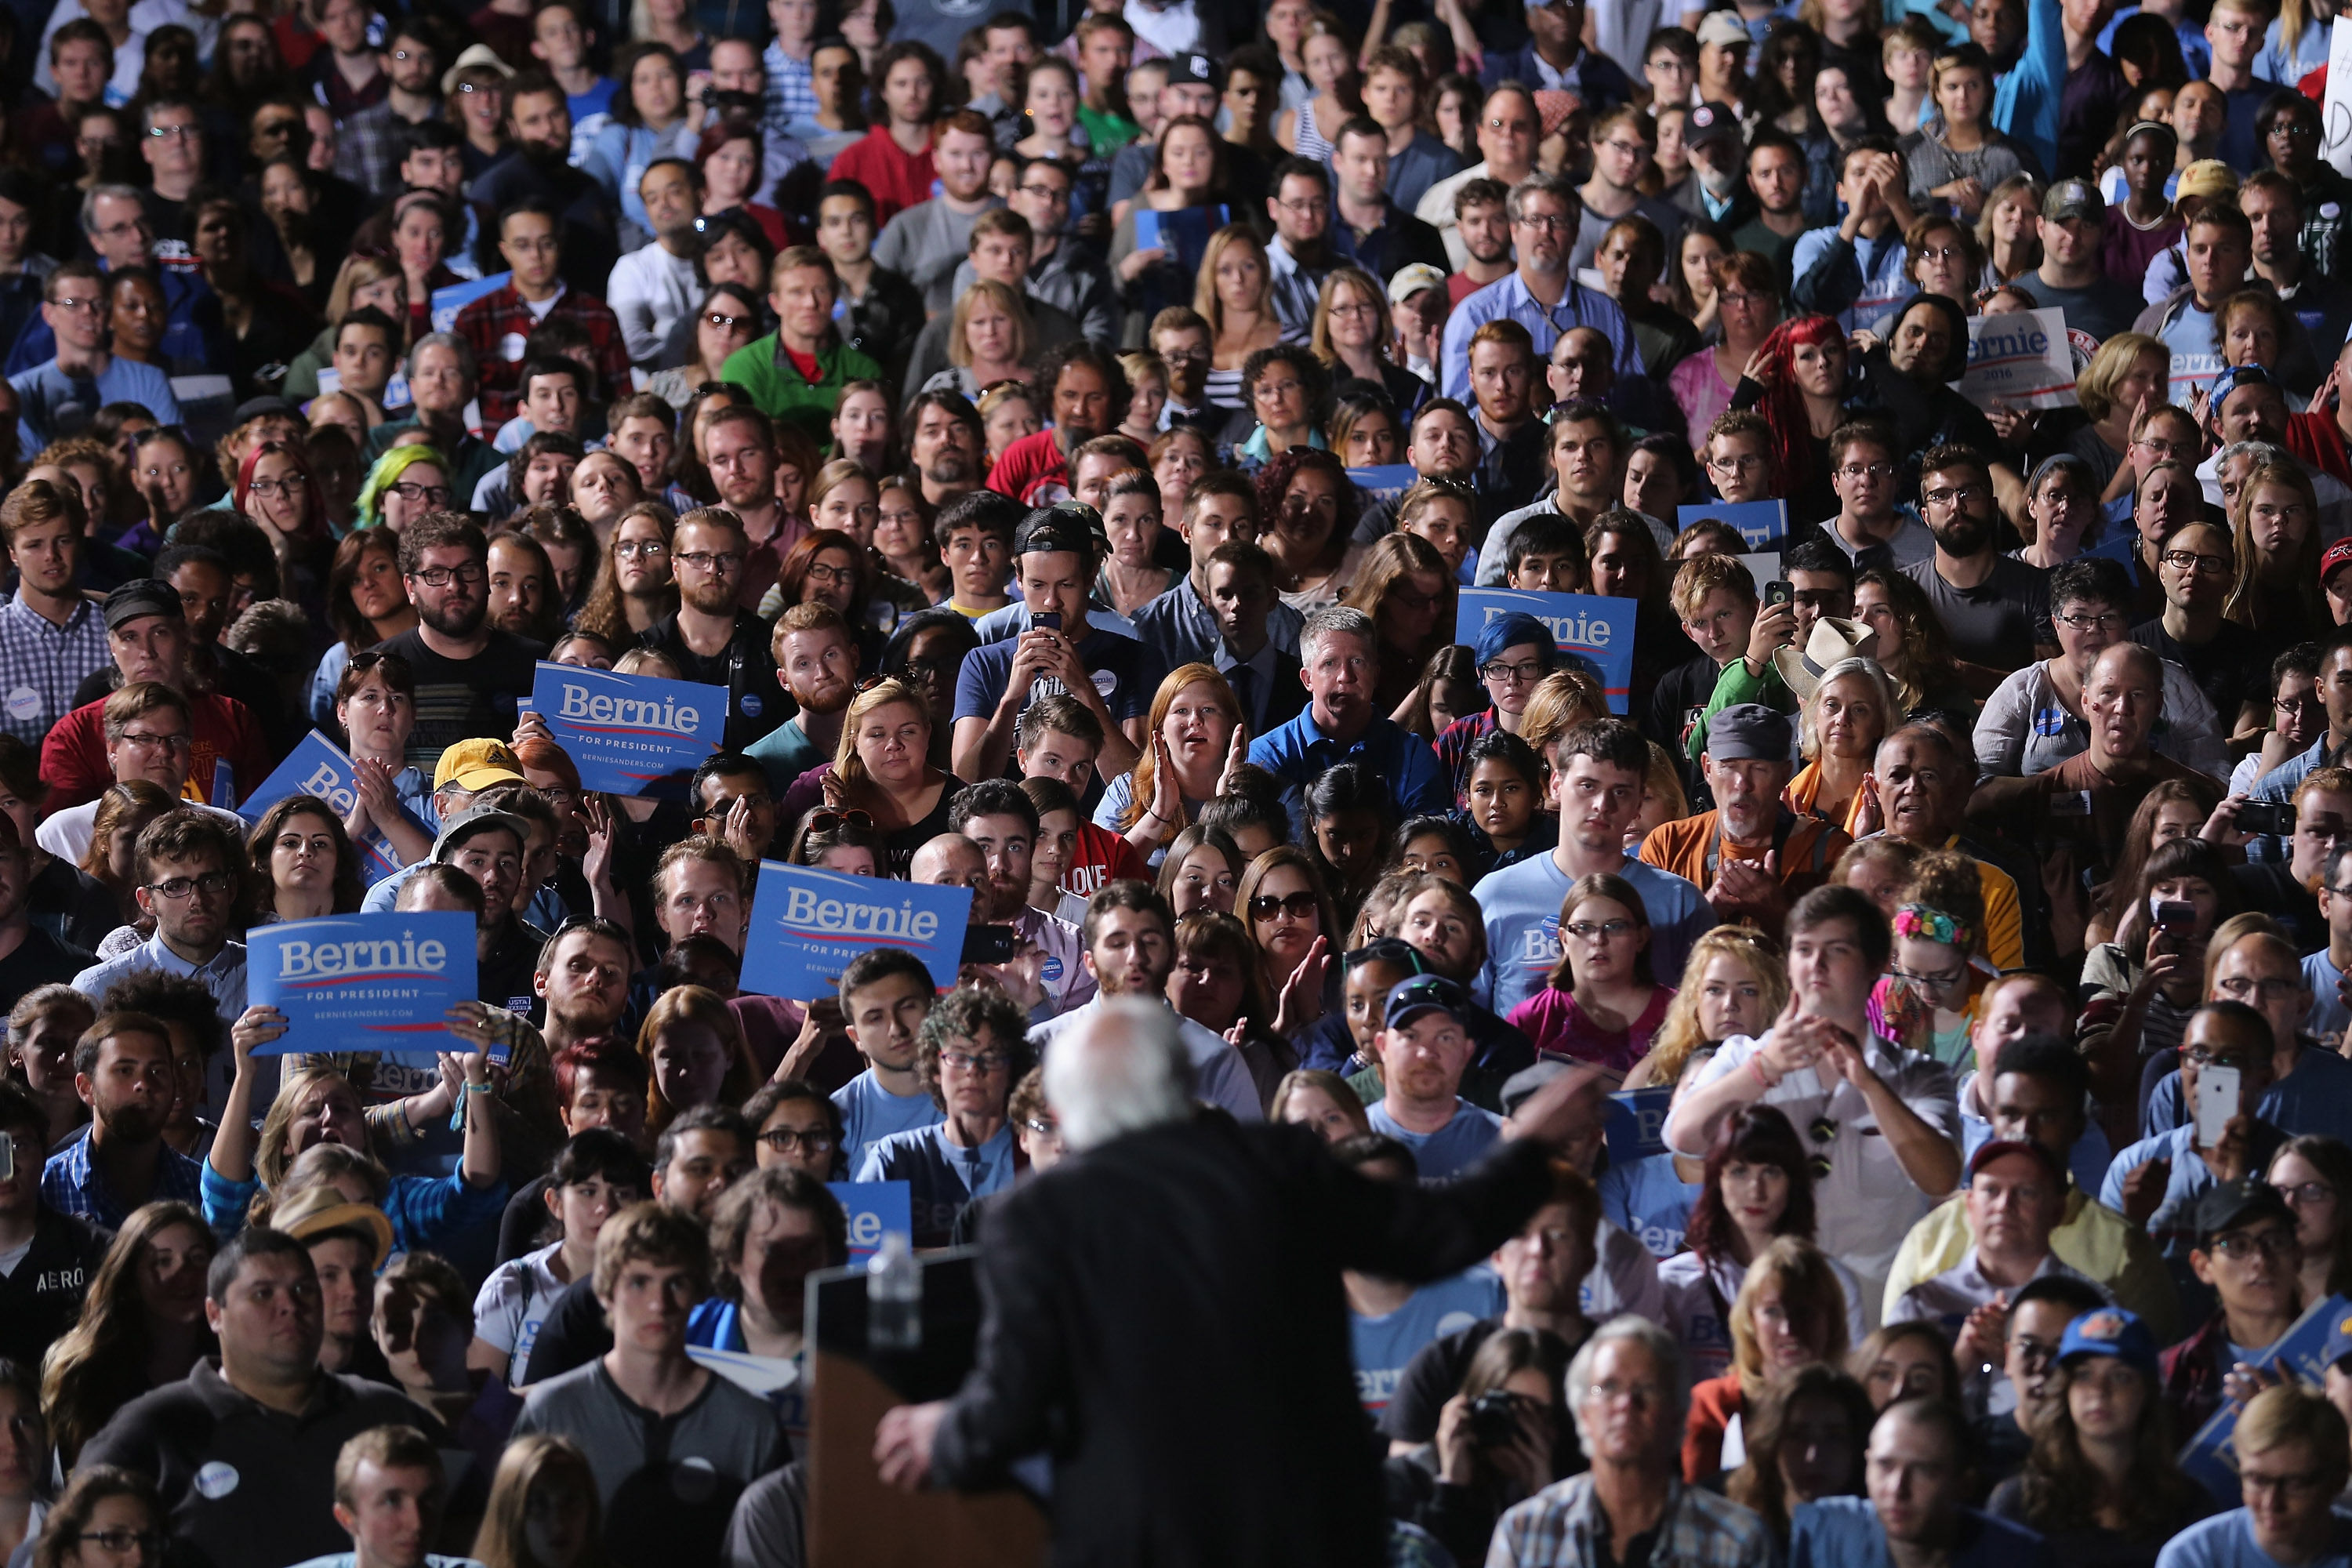 Thousands of people gather to hear Democratic presidential candidate Sen. Bernie Sanders (I-VT) during a campaign rally at the Prince William County Fairground September 14, 2015 in Manassas, Virginia.